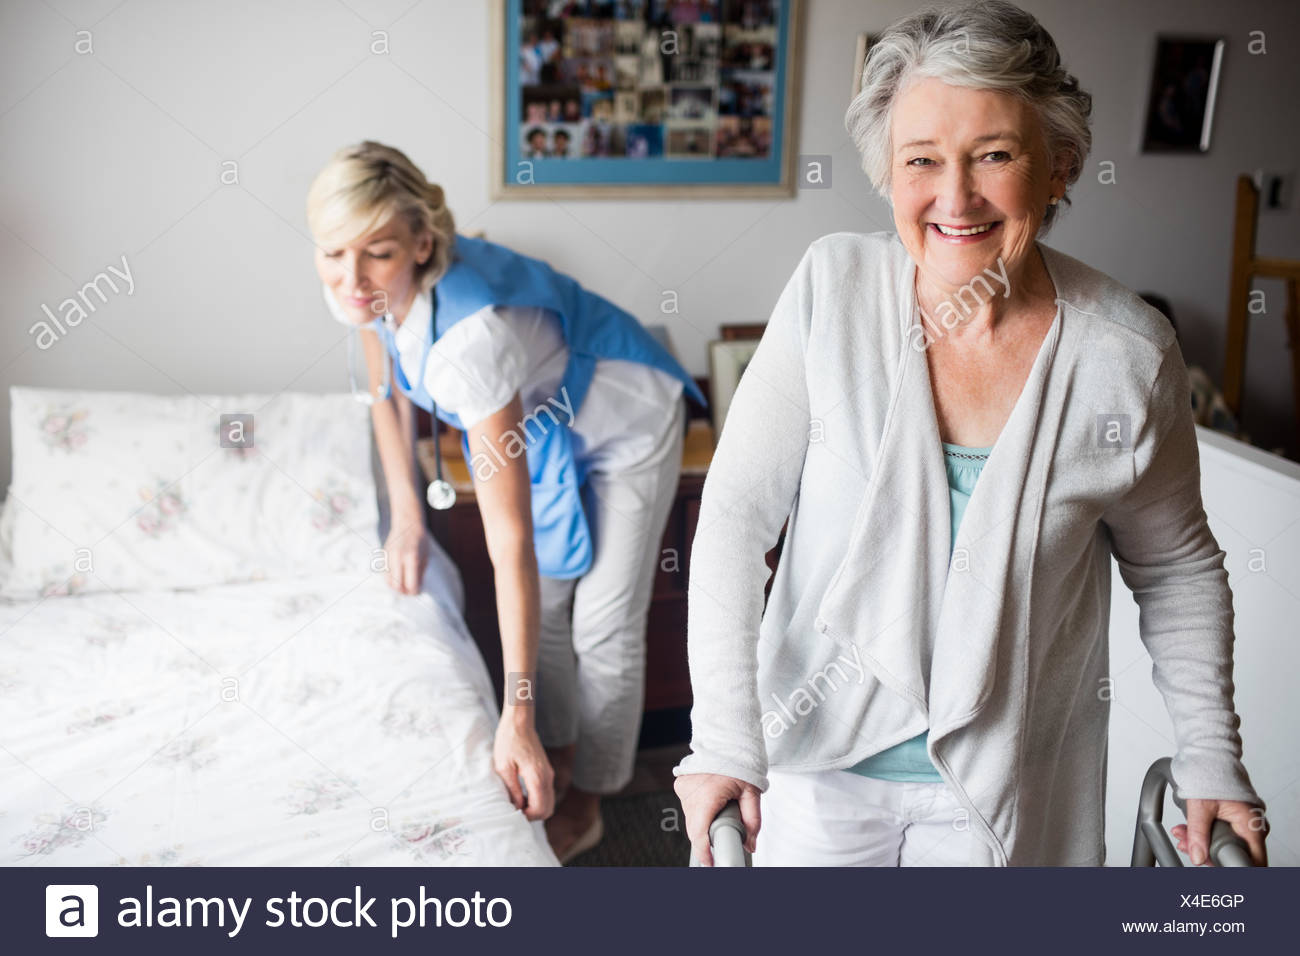 Nurse and senior woman are posing - Stock Image